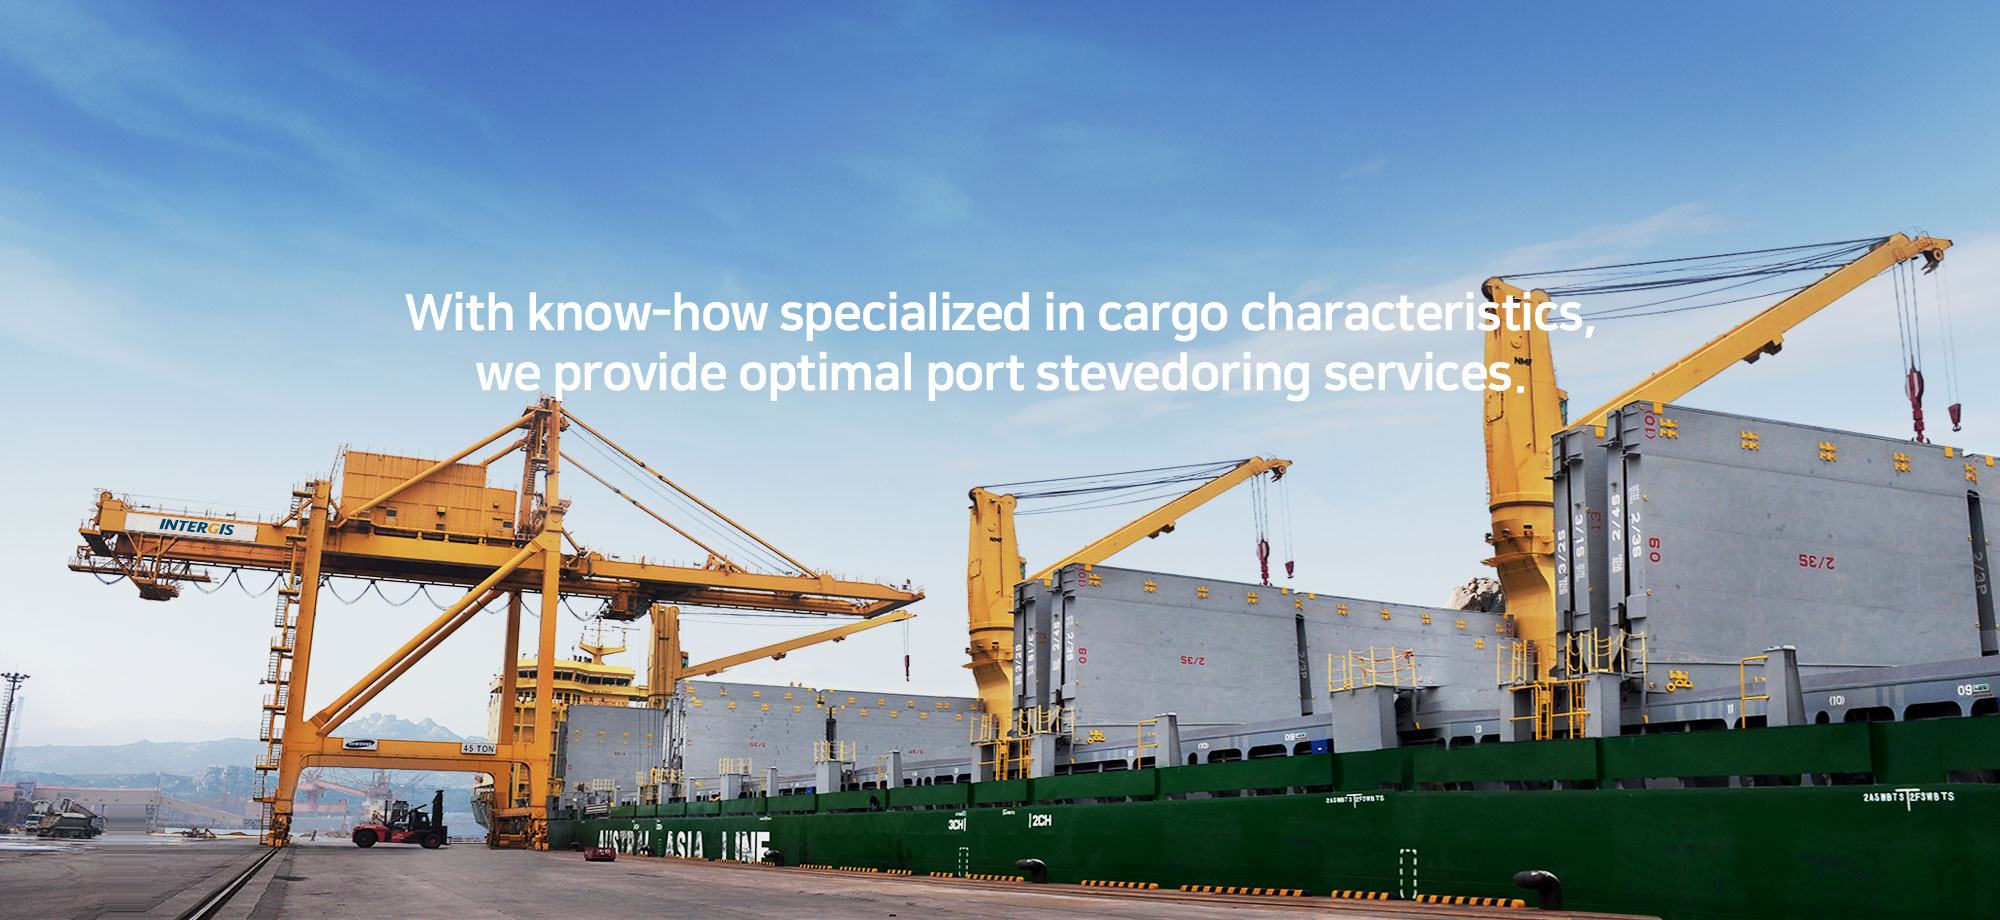 With know-how specialized in freight characteristi